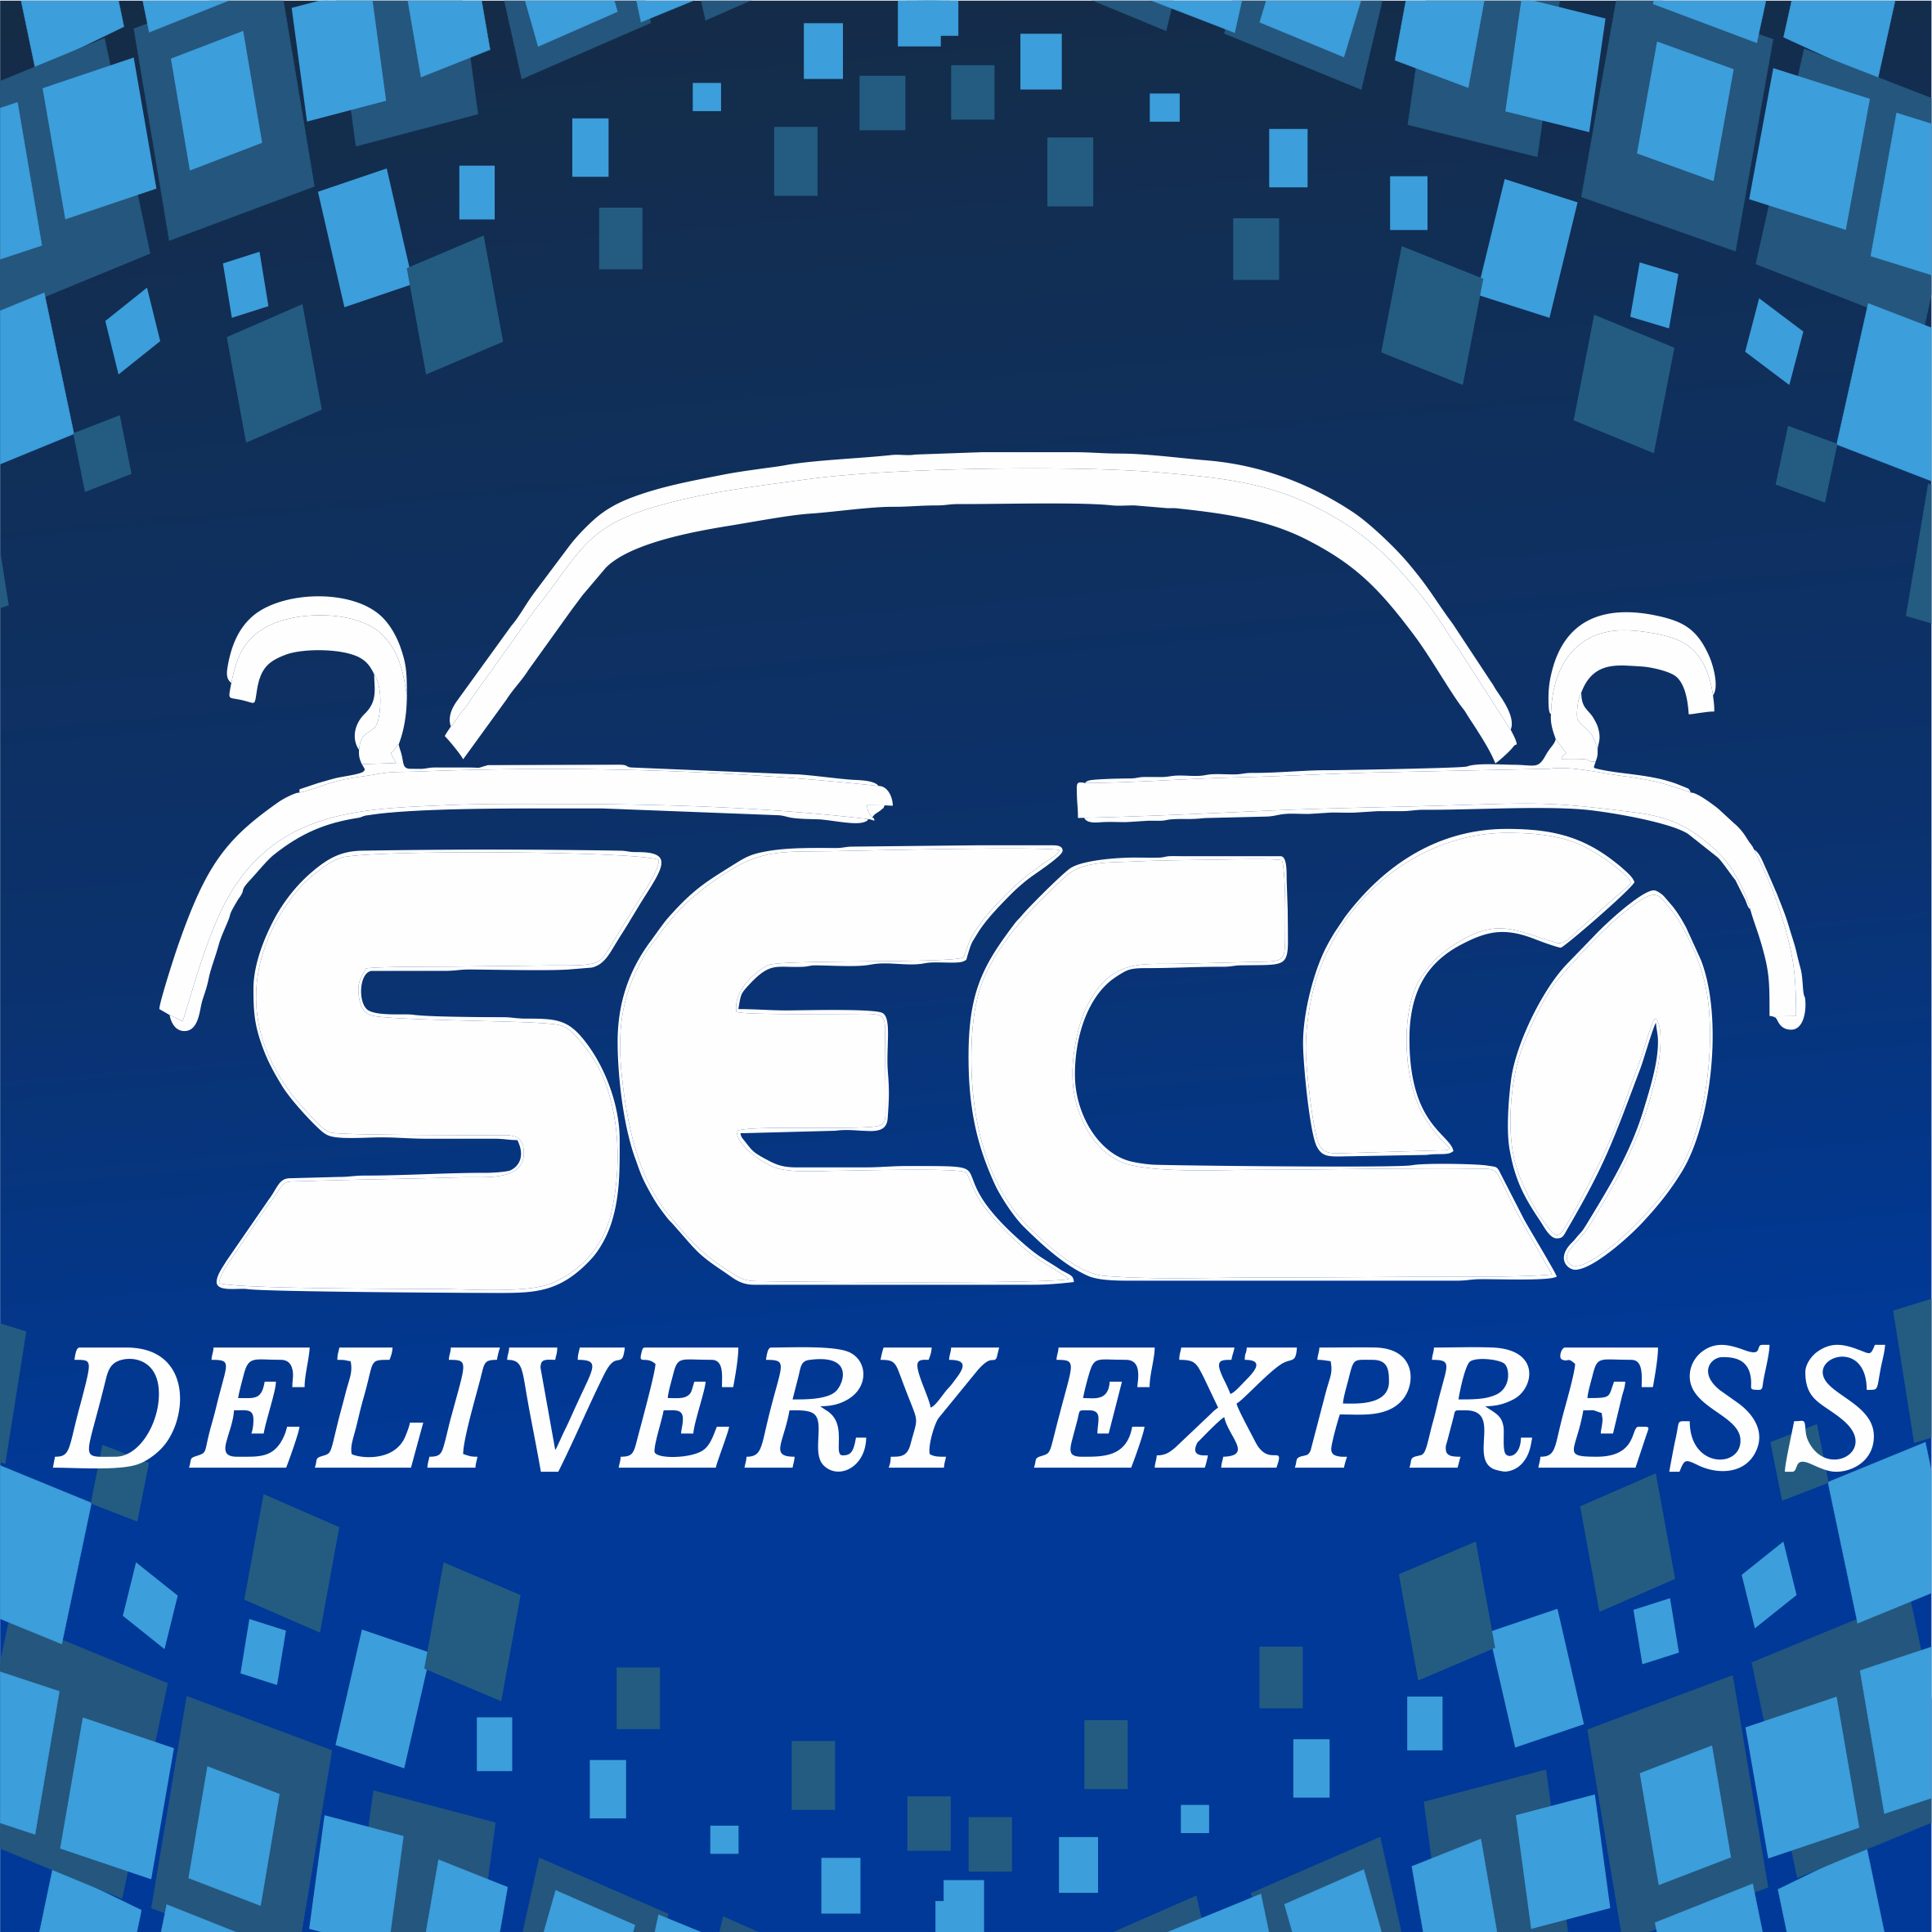 Seco Delivery Express